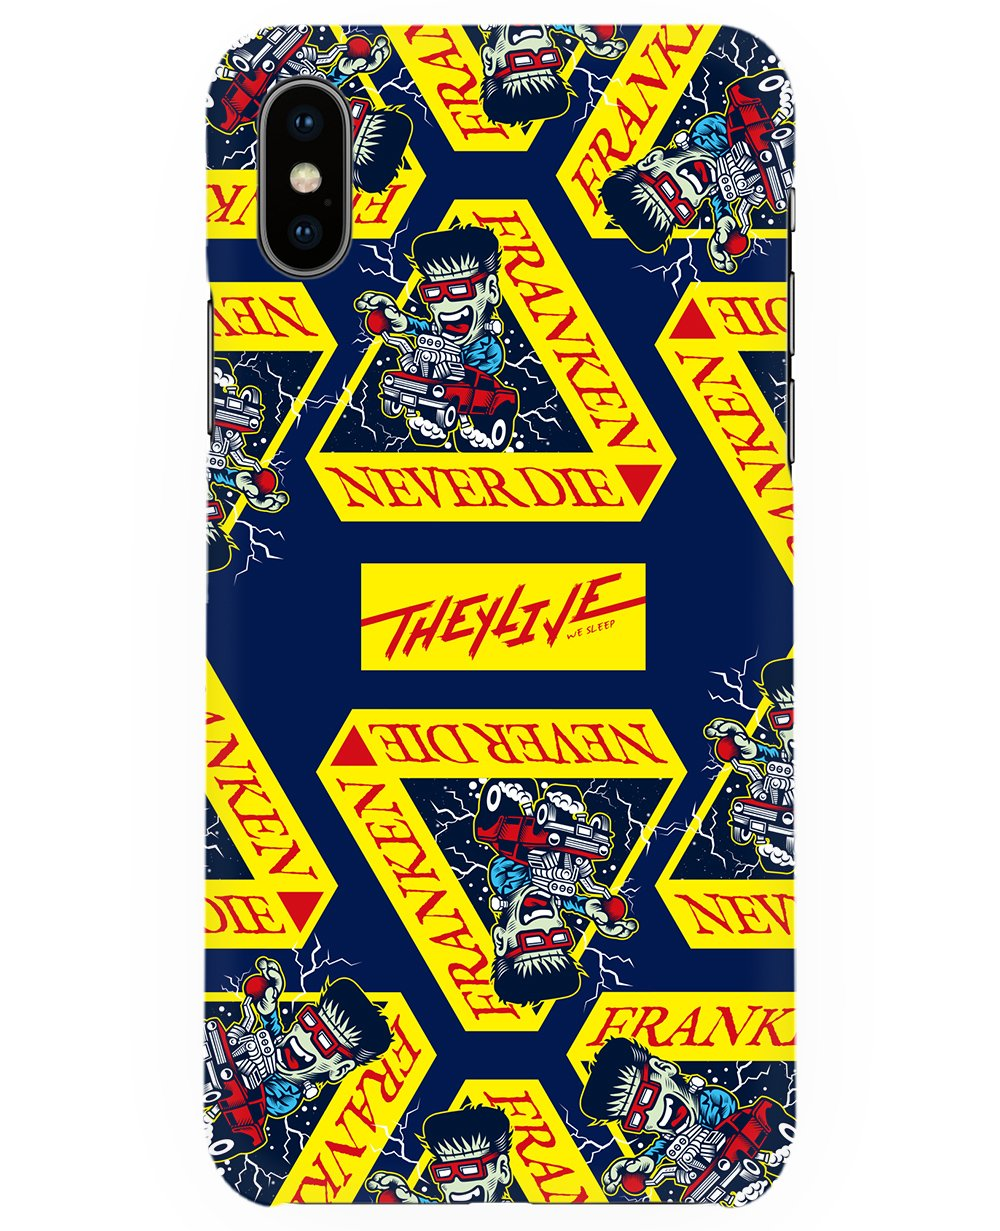 Franken Print Iphone Case - Phone cases - THEYLIVE - BRANMA